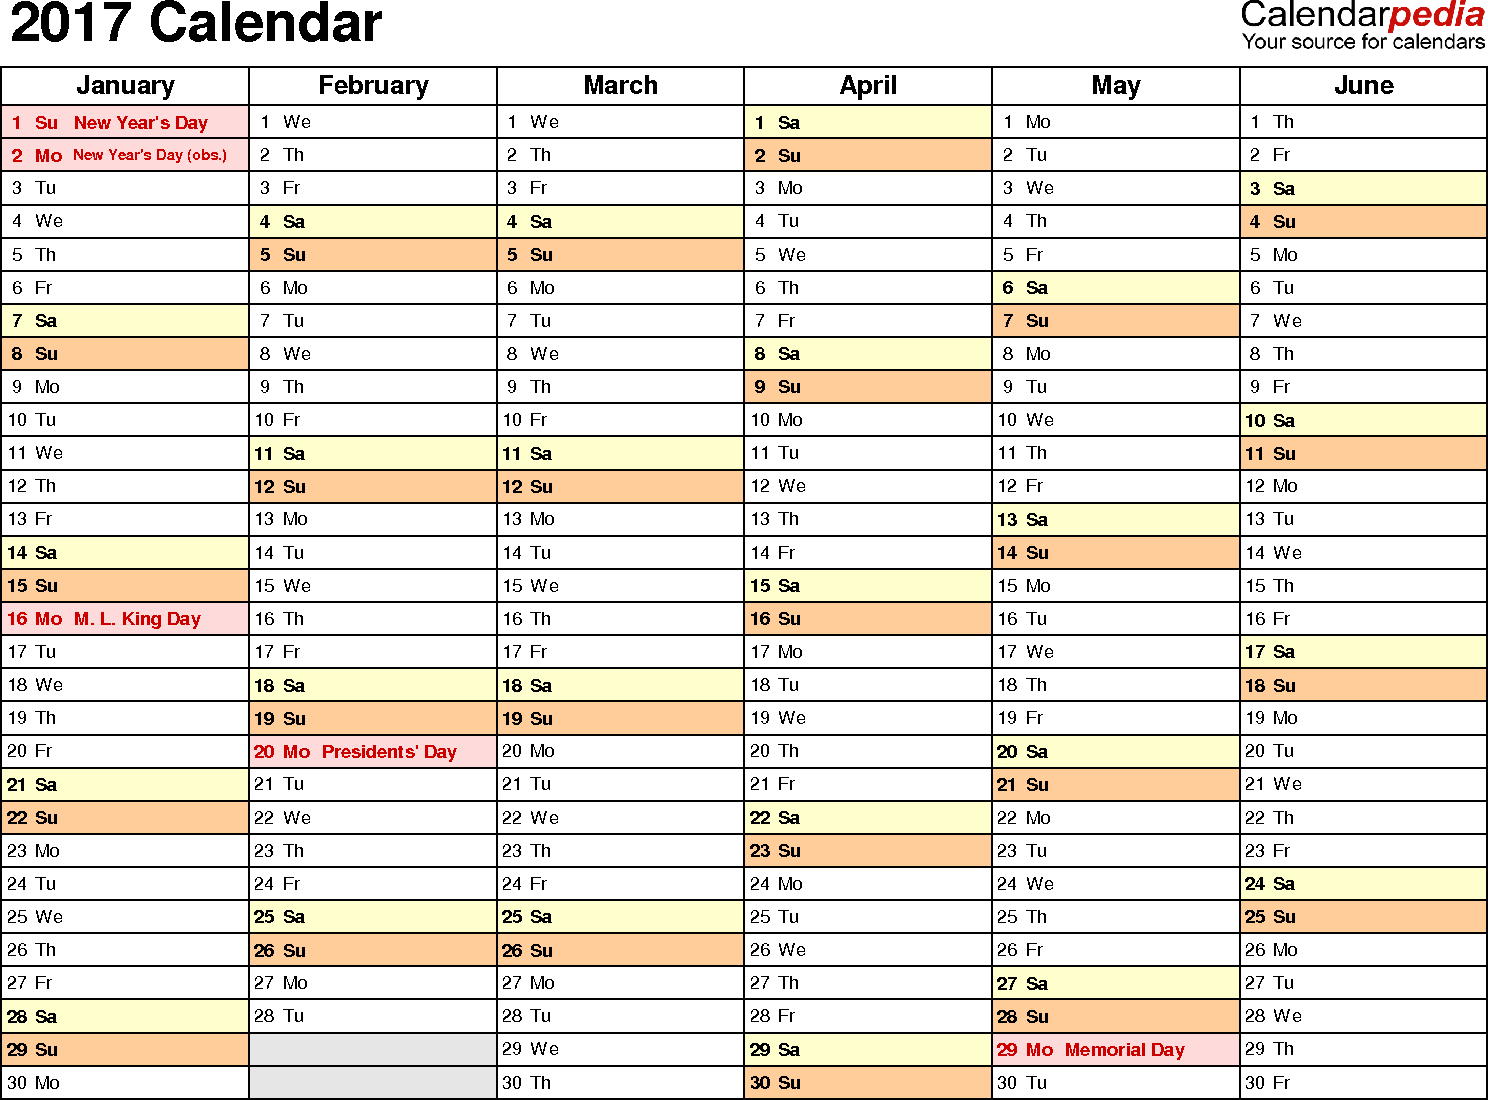 Ediblewildsus  Inspiring  Calendar  Download  Free Printable Excel Templates Xls With Remarkable Template   Calendar For Excel Months Horizontally  Pages Landscape Orientation With Cute Dividing In Excel Also Excel Ceiling In Addition If And In Excel And Pv Excel As Well As How To Keep Leading Zeros In Excel Additionally  Calendar Template Excel From Calendarpediacom With Ediblewildsus  Remarkable  Calendar  Download  Free Printable Excel Templates Xls With Cute Template   Calendar For Excel Months Horizontally  Pages Landscape Orientation And Inspiring Dividing In Excel Also Excel Ceiling In Addition If And In Excel From Calendarpediacom